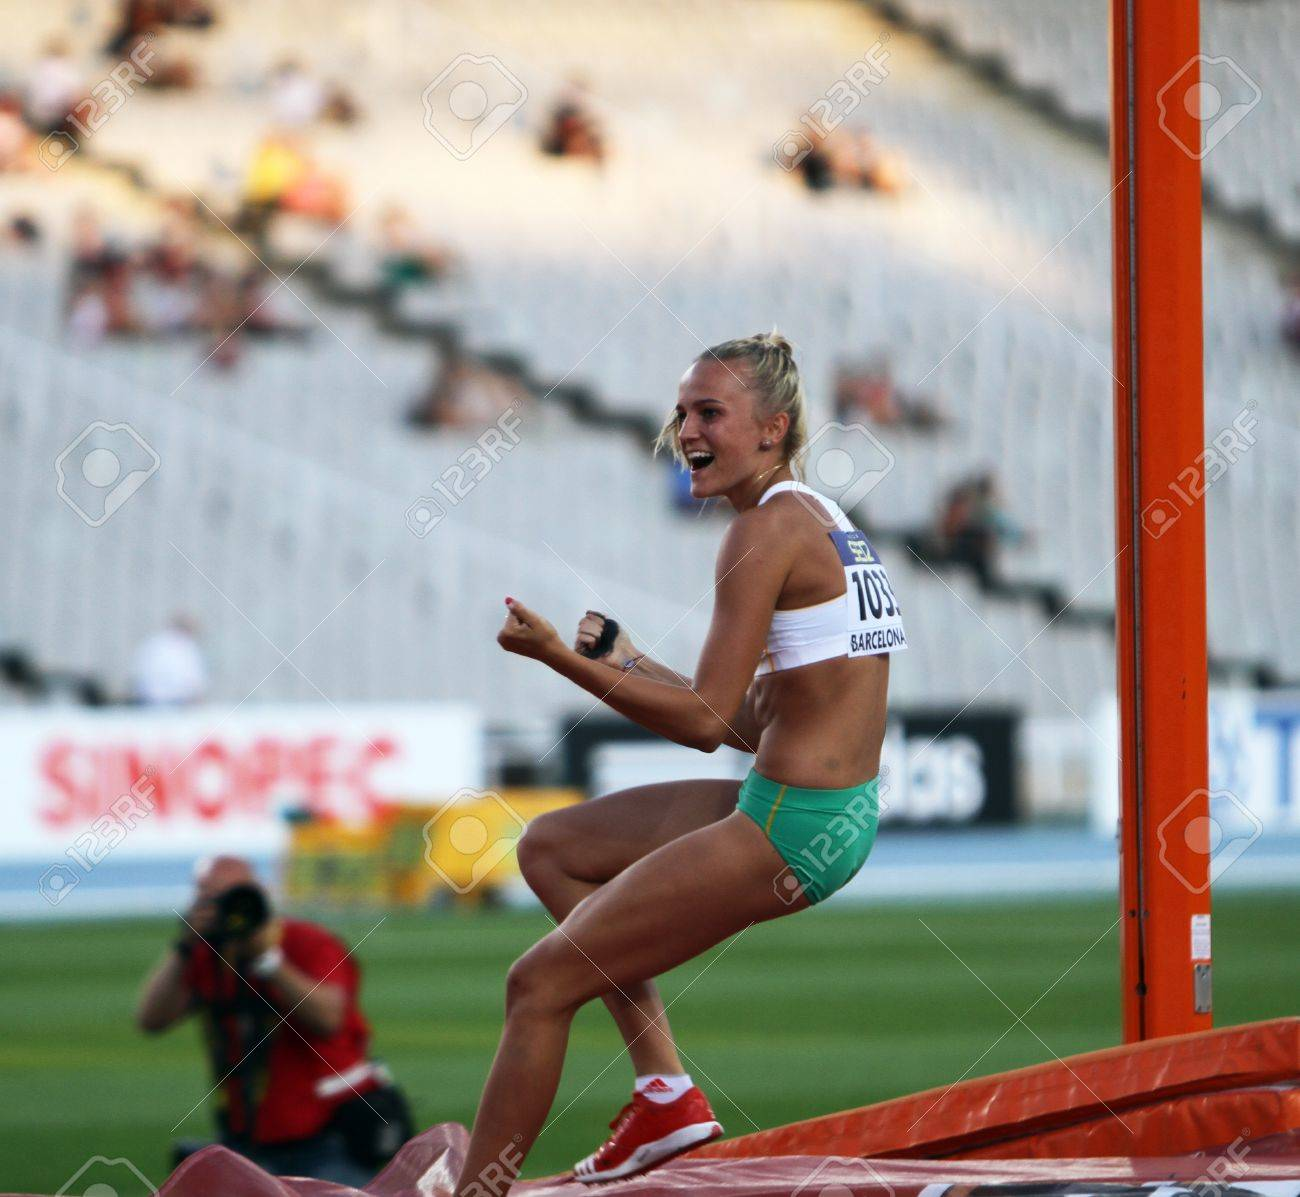 BARCELONA, SPAIN - JULY 14  Liz Parnov from Australia celebrates silver medal in pole vault competition on the 2012 IAAF World Junior Athletics Championships on July 14, 2012 in Barcelona, Spain Stock Photo - 14963704